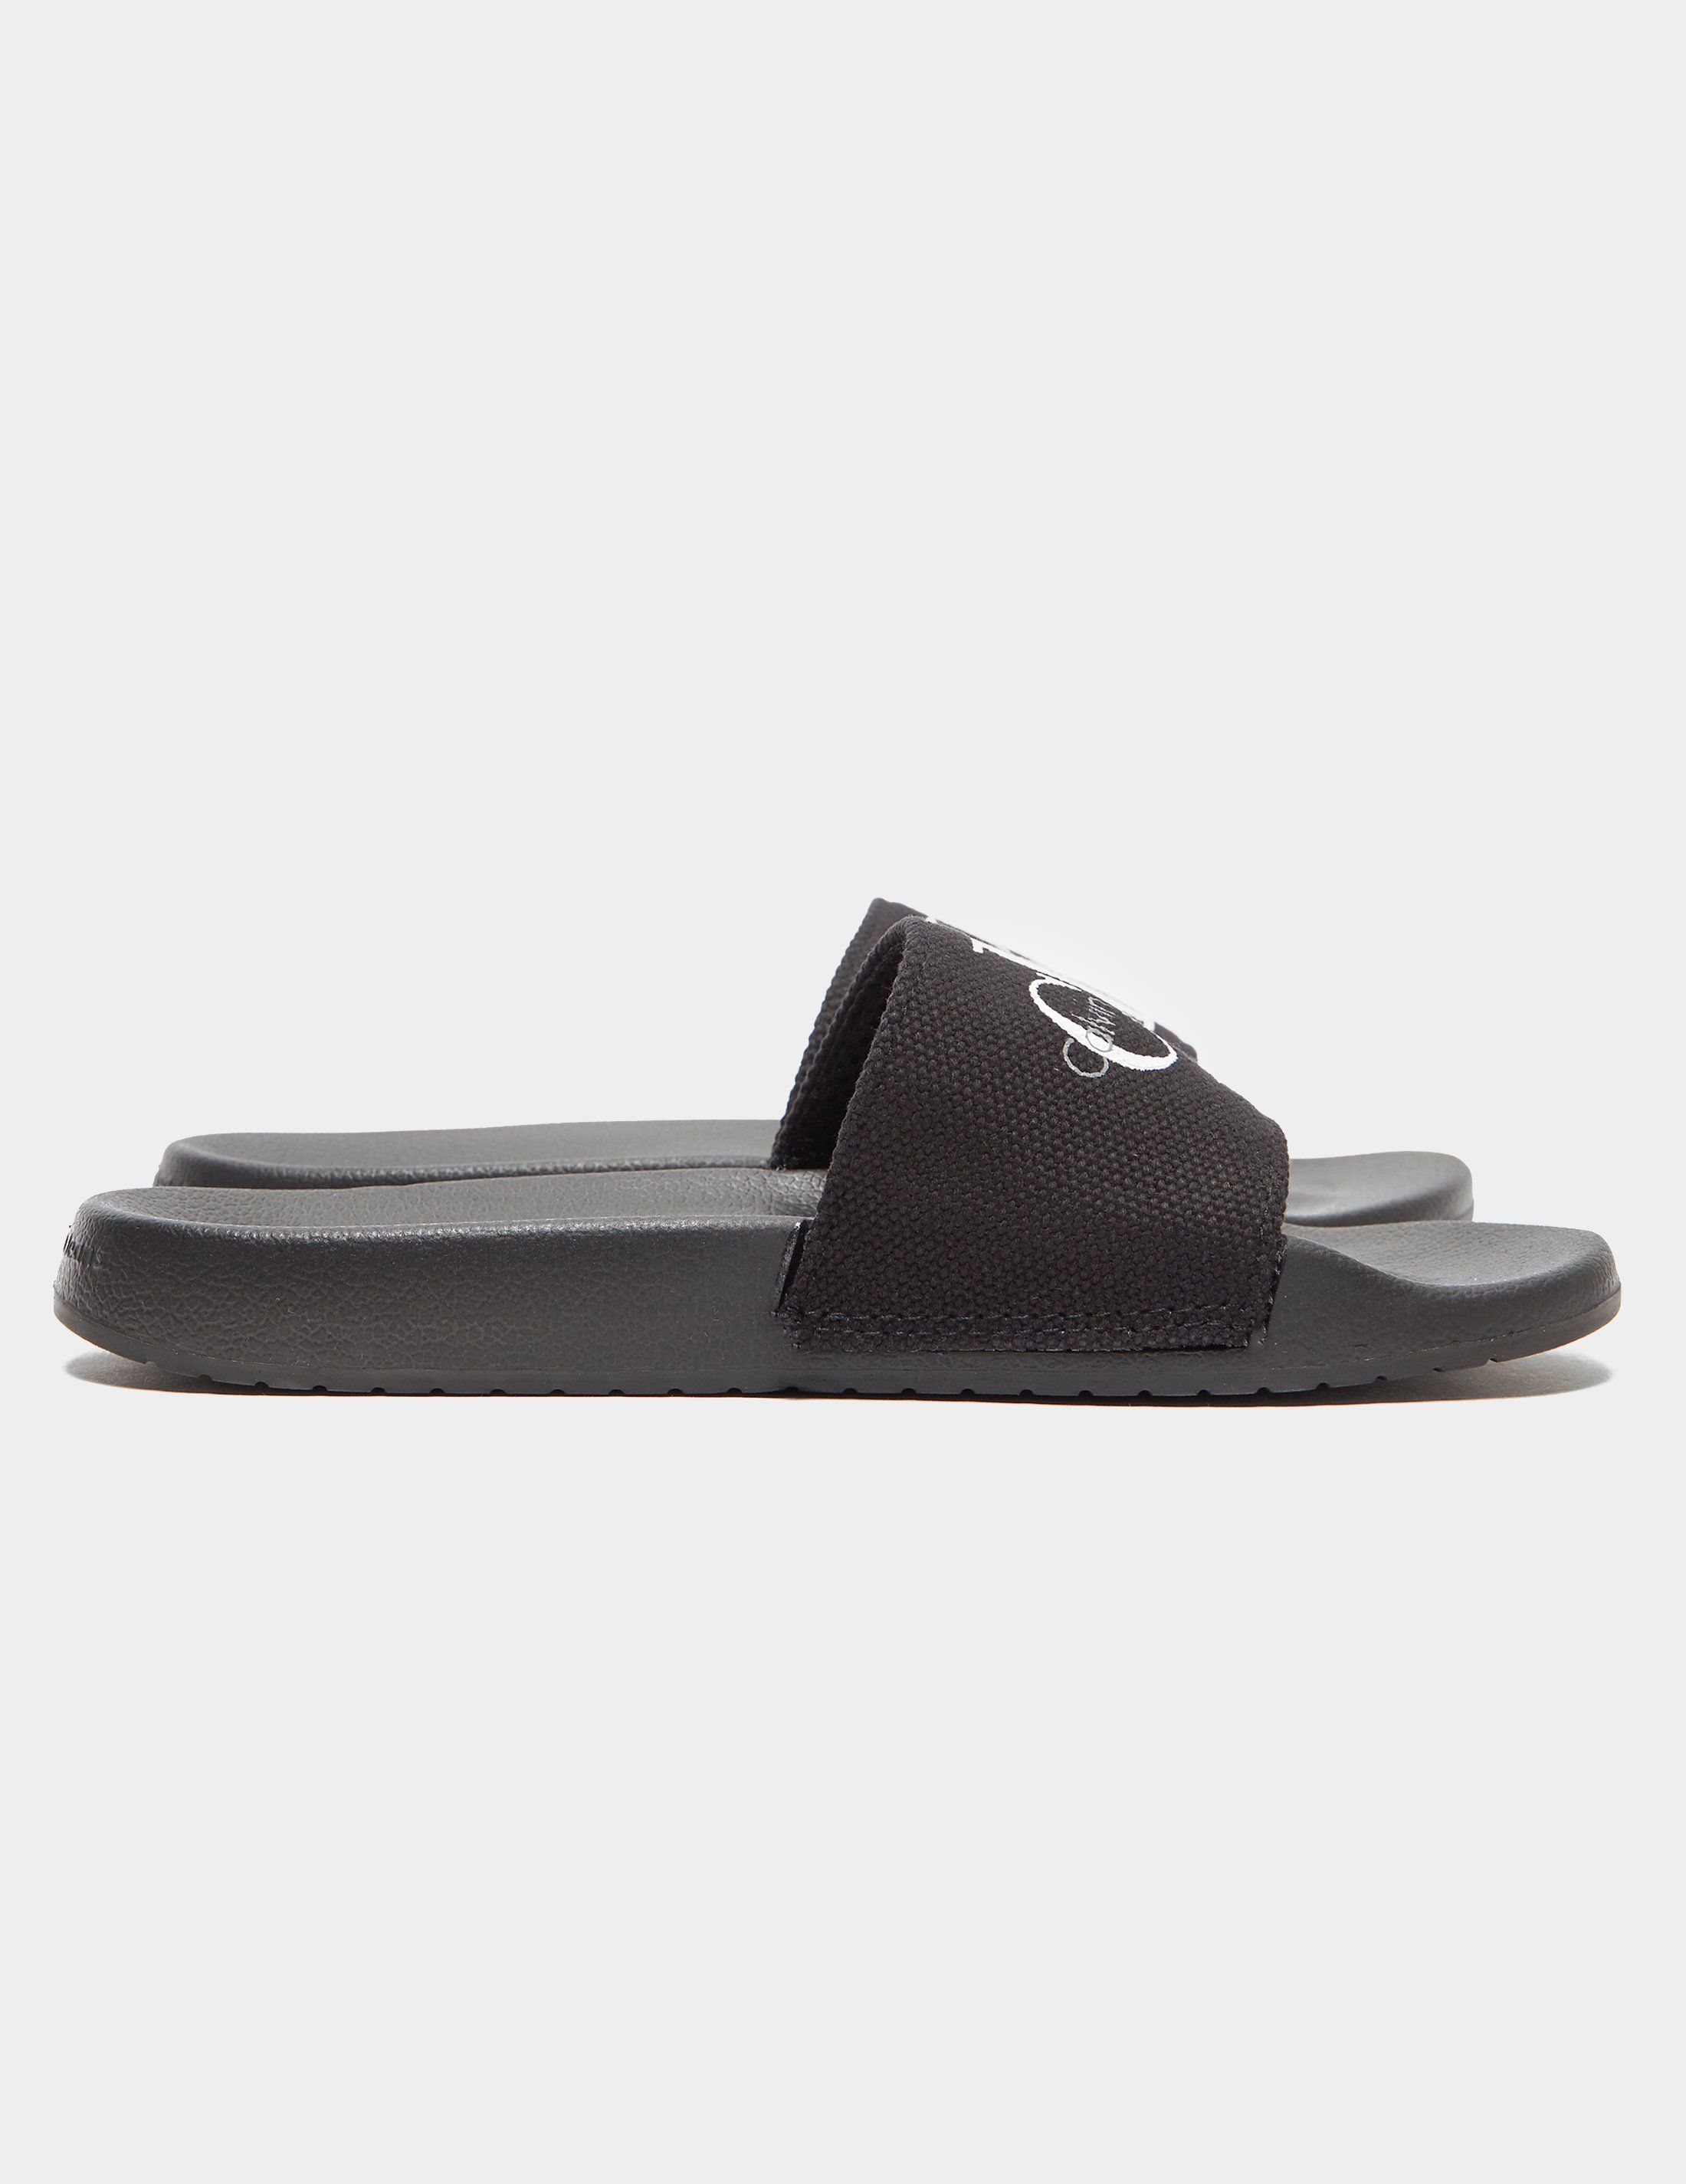 Calvin Klein Jeans Chantal Slides Women's